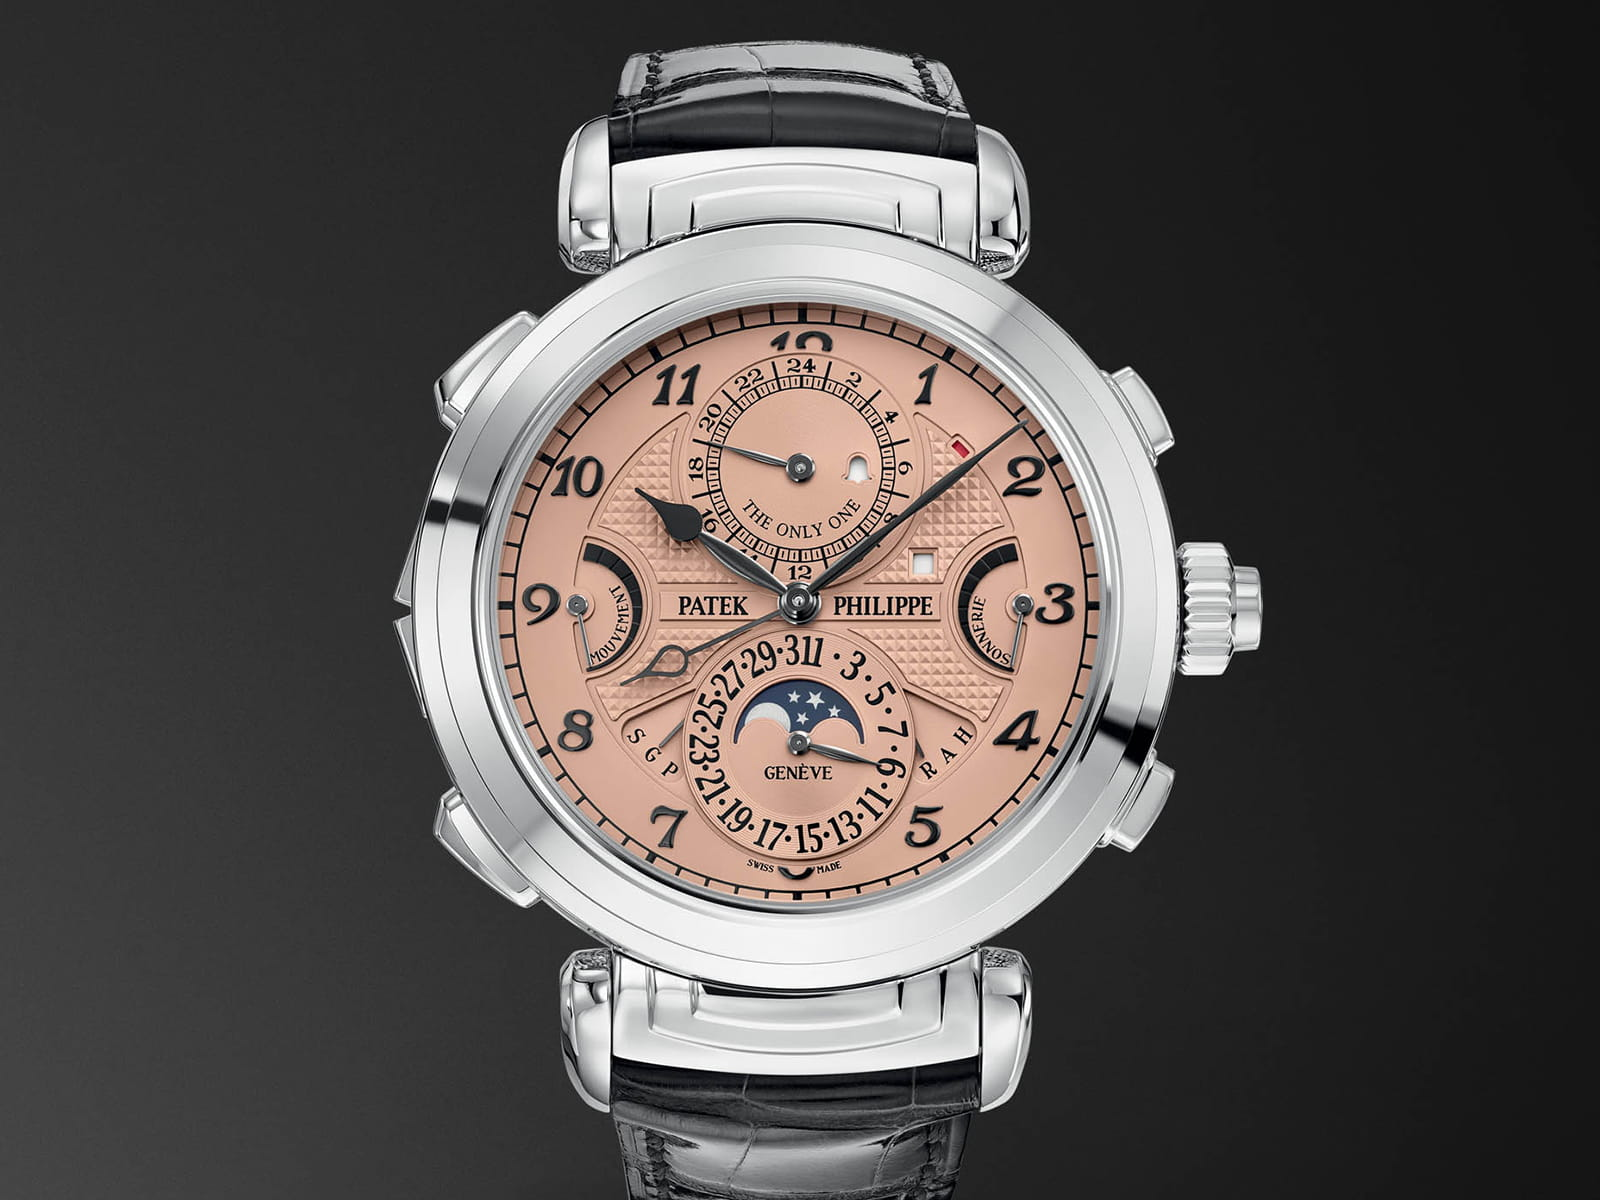 6300a-010-patek-philippe-6300a-steel-grandmaster-chime-only-watch-2019-2.jpg